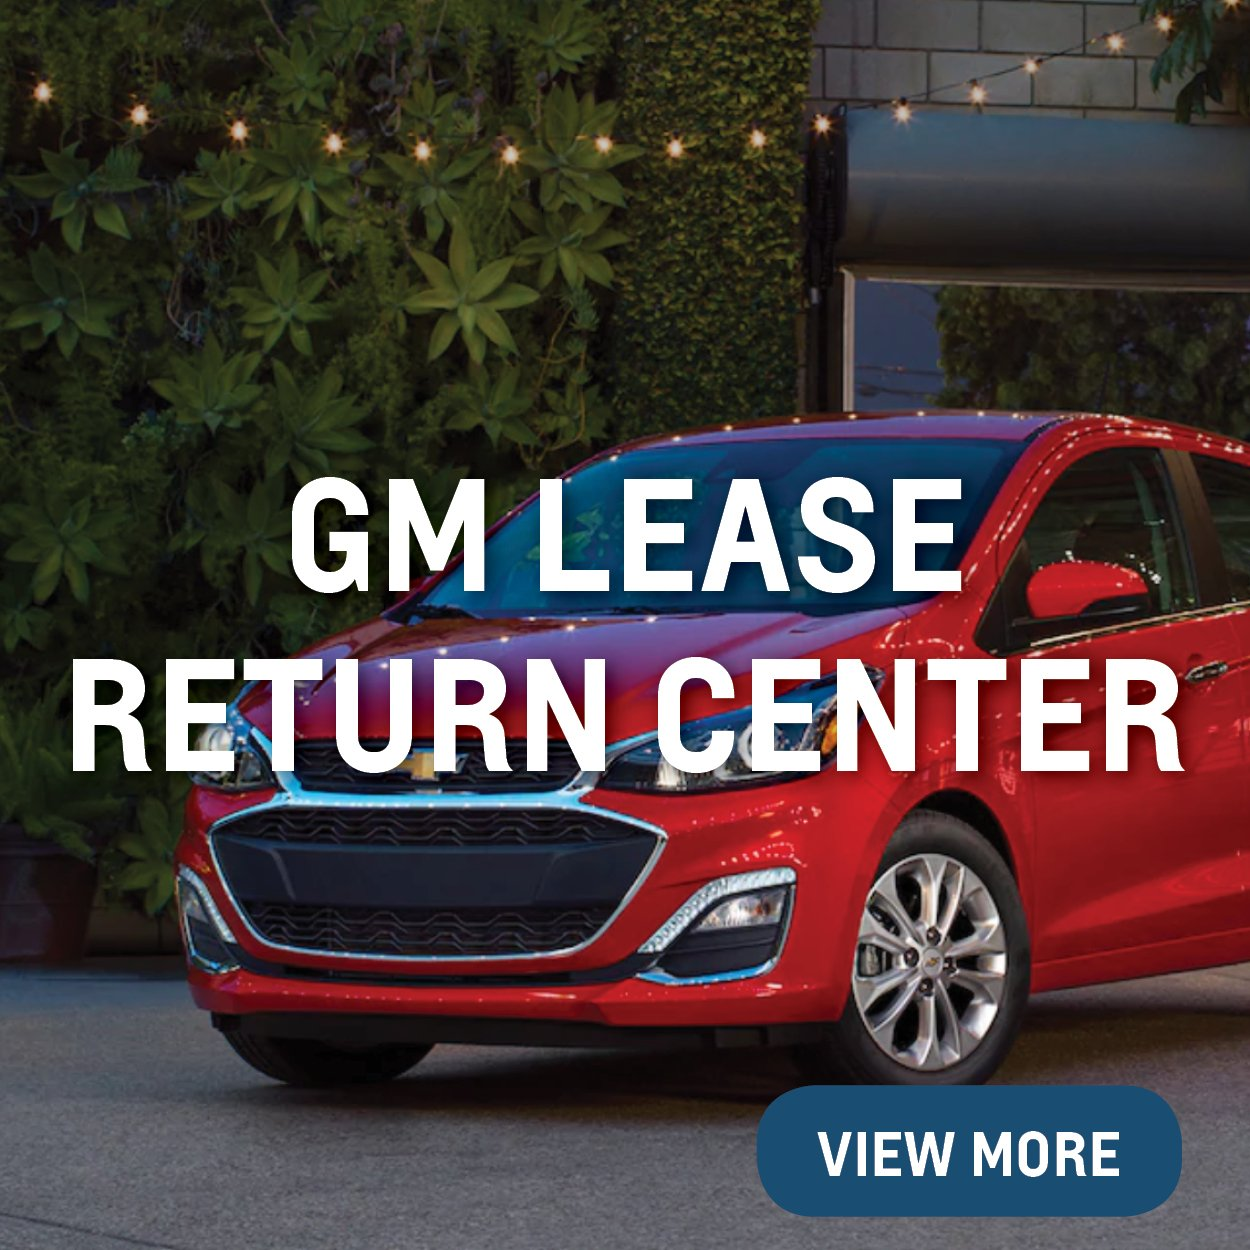 GM Lease Return Center